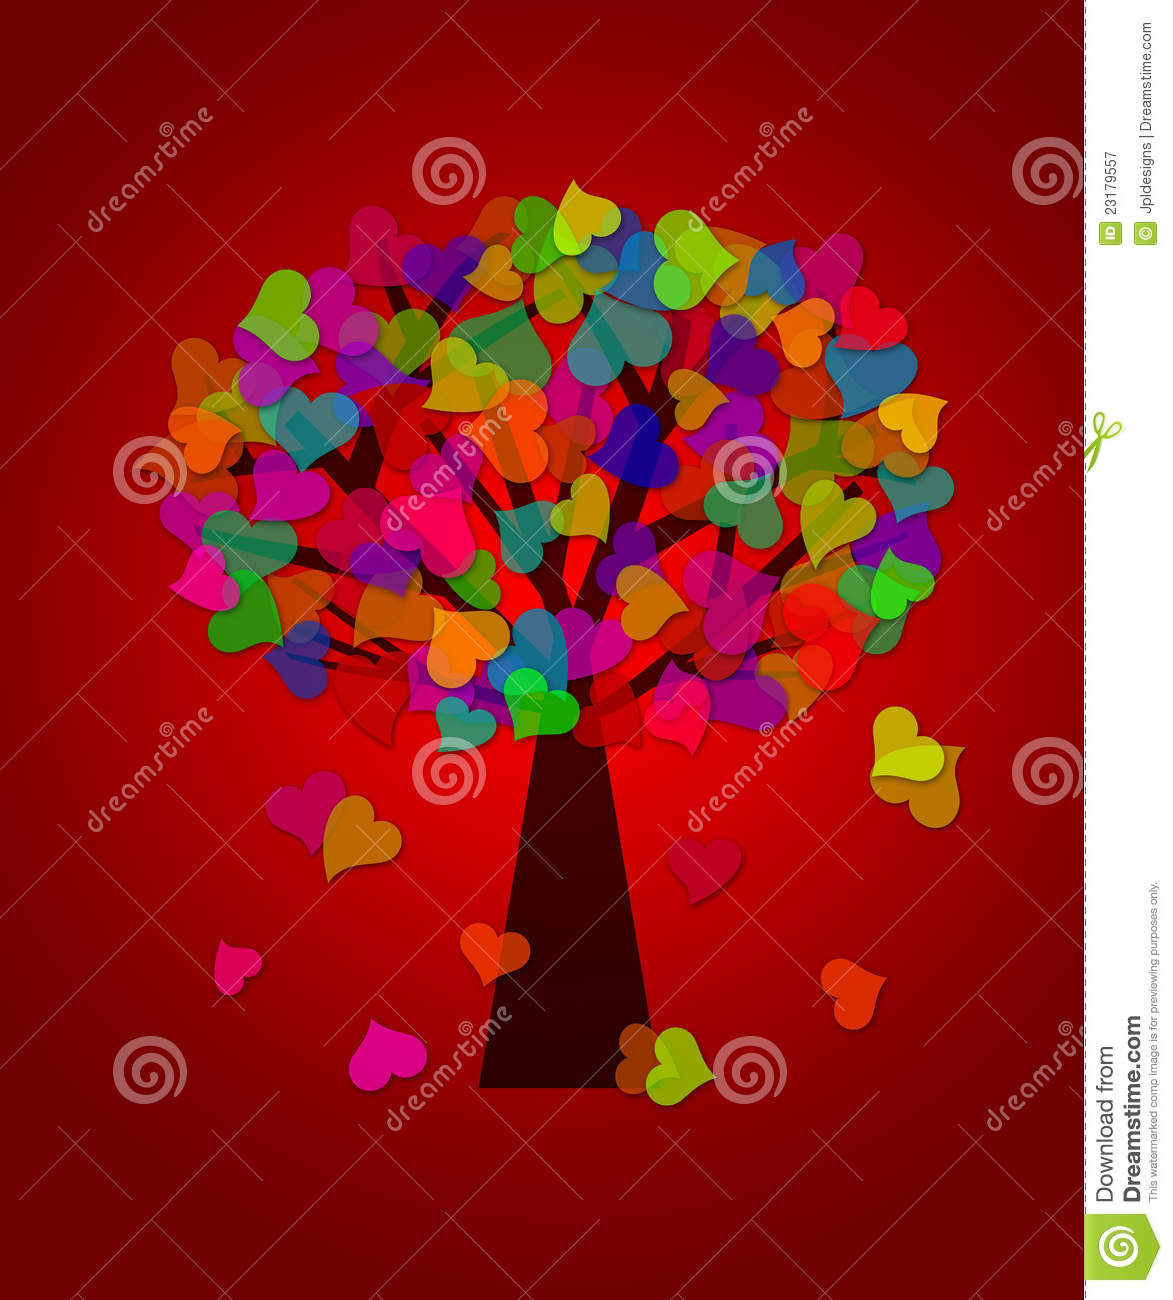 Colorful valentines day hearts tree red background royalty